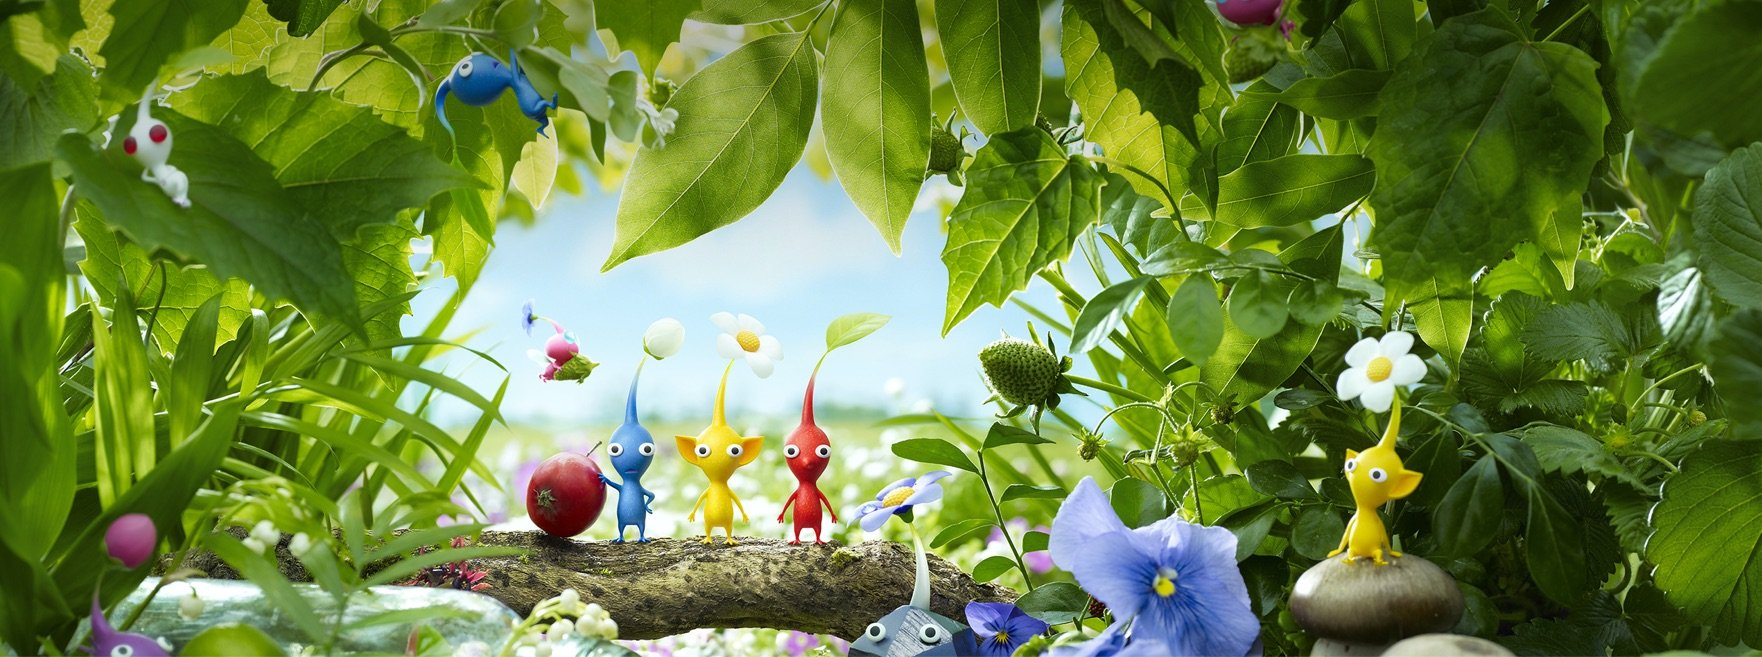 Pikmin 3 Goes Deluxe On Switch This October Neoseeker